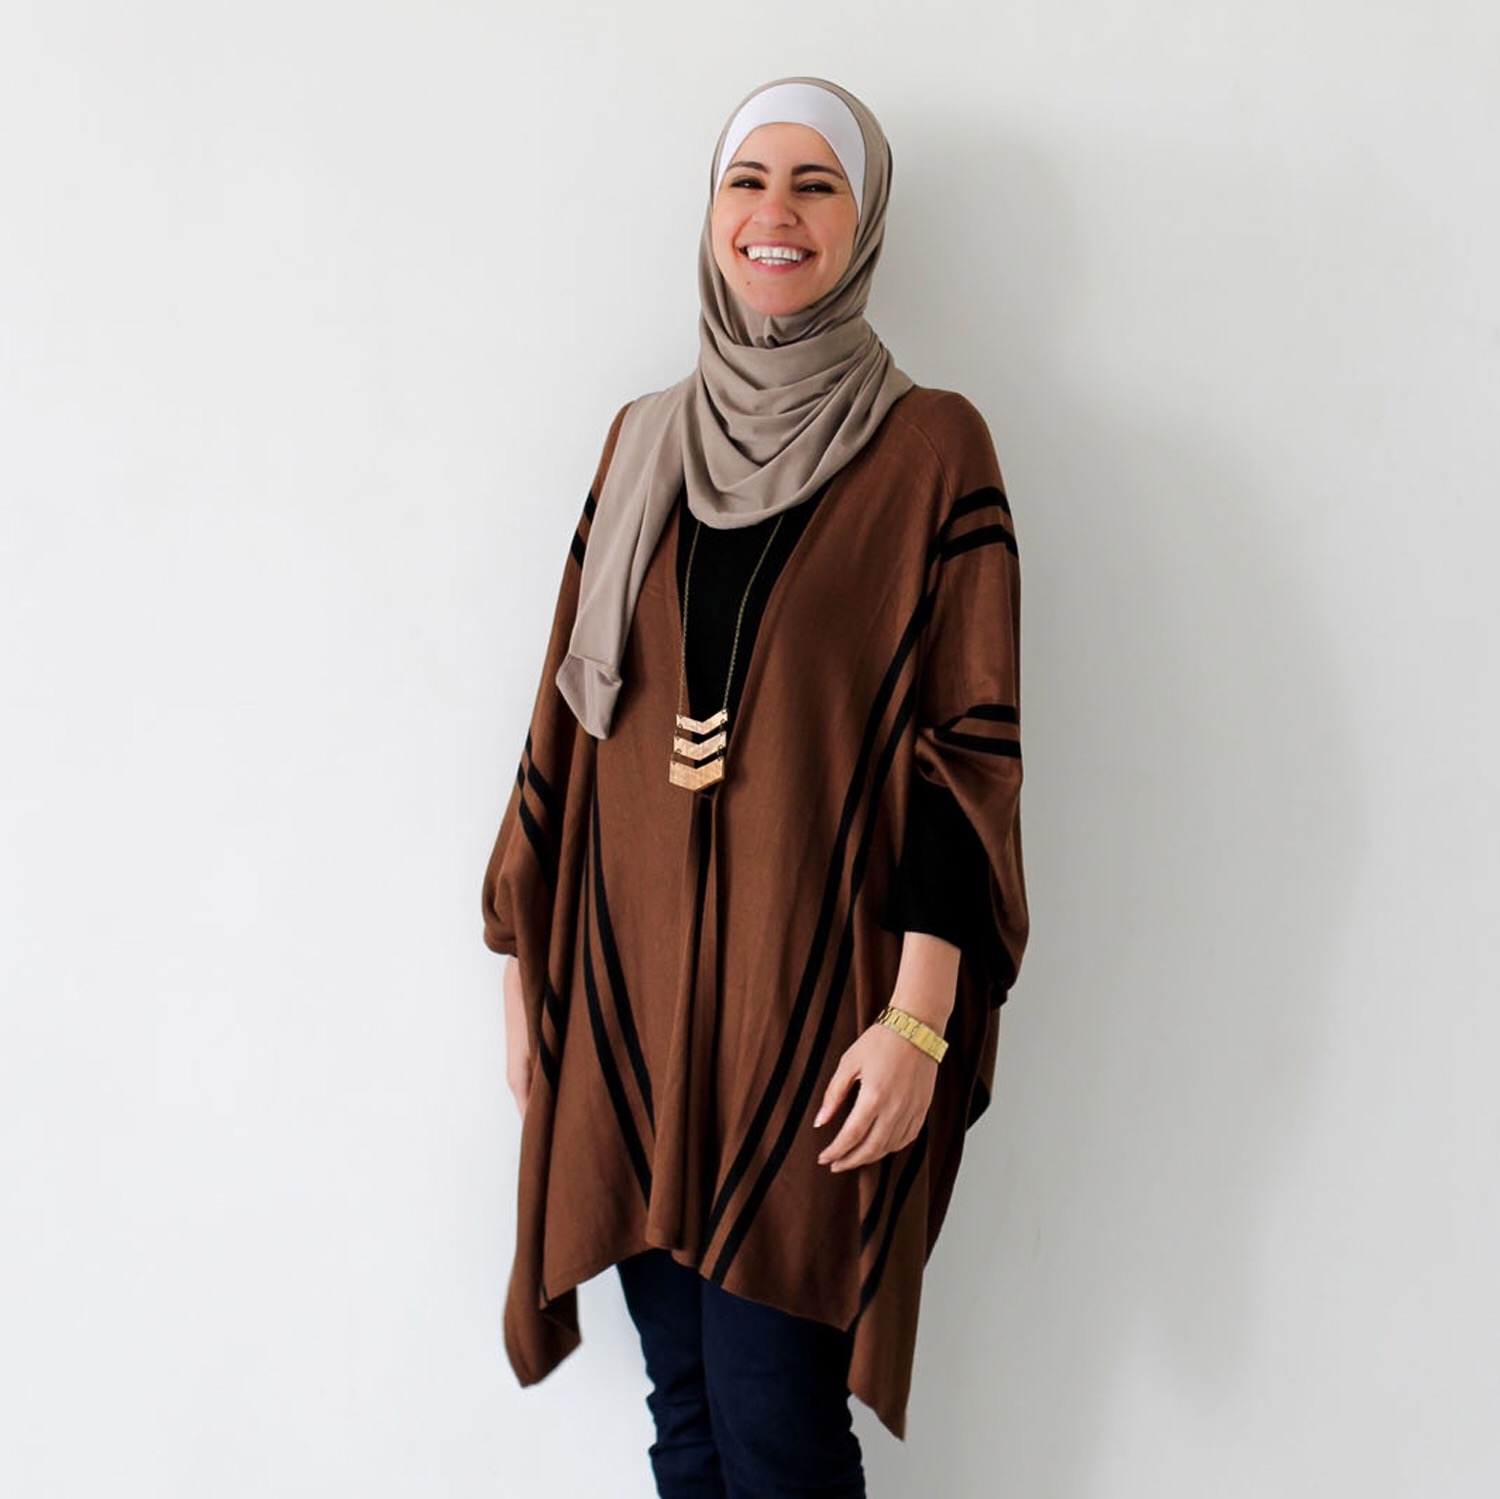 The women in Jordan that Fair Anita work with are simply looking to earn a living for their families and have a stable life. They use olive wood, a natural resource in the area, to make many of their unique designs.